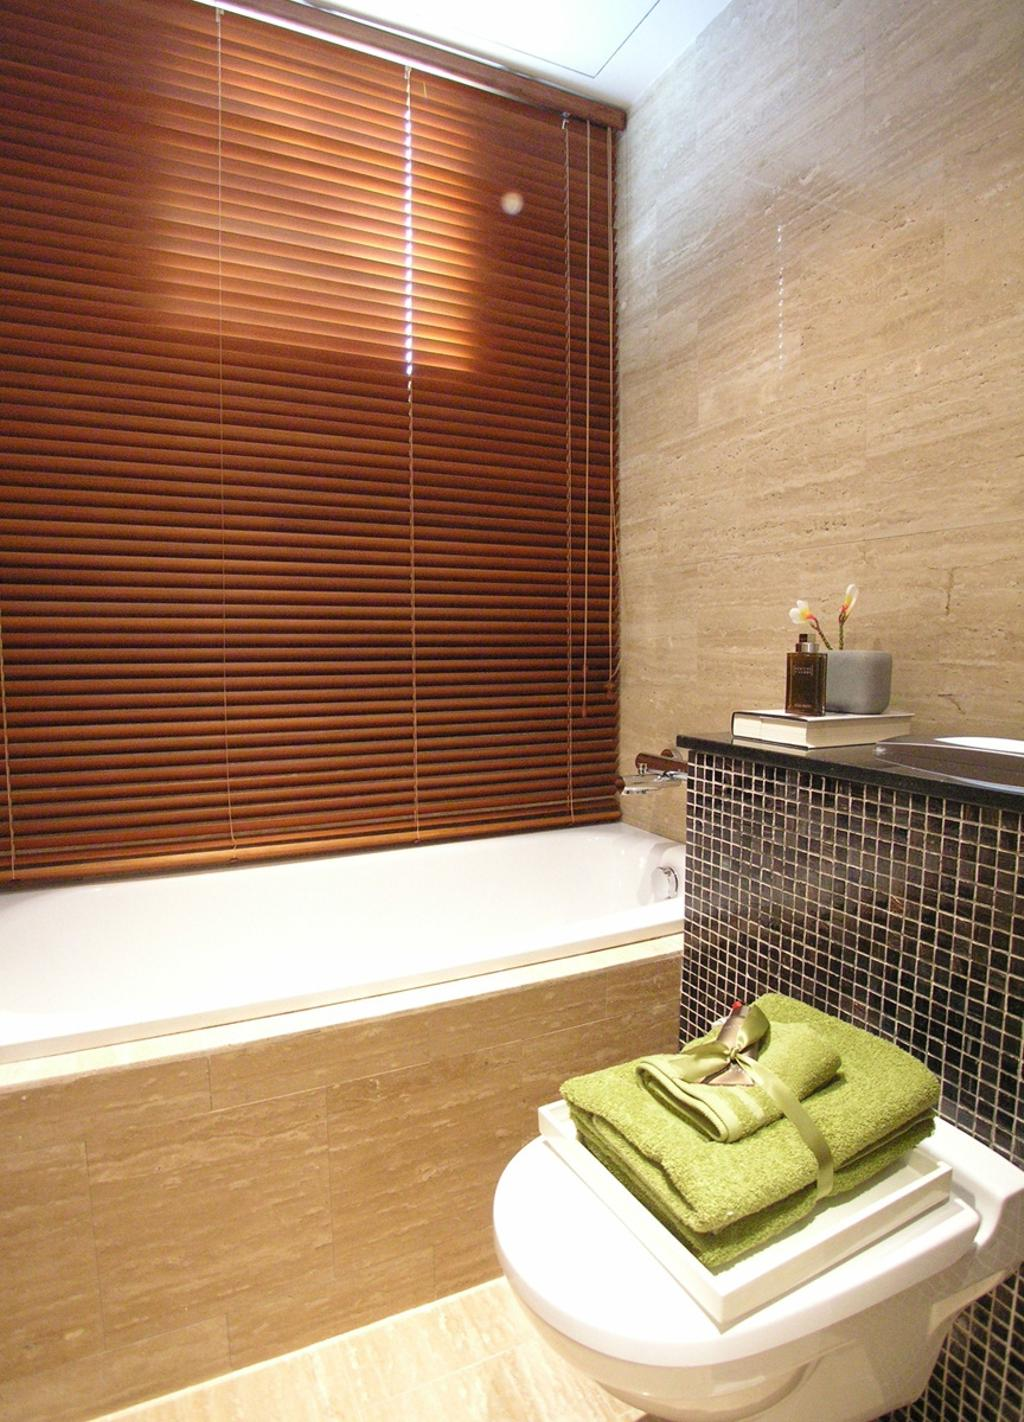 Emily Residence Show-unit 2, Commercial, Architect, Wallflower Architecture + Design, Contemporary, Bathroom, Shower, Bathtub, Blinds, Water Closet, Toilet Bowl, Mosaic Tile, Tile